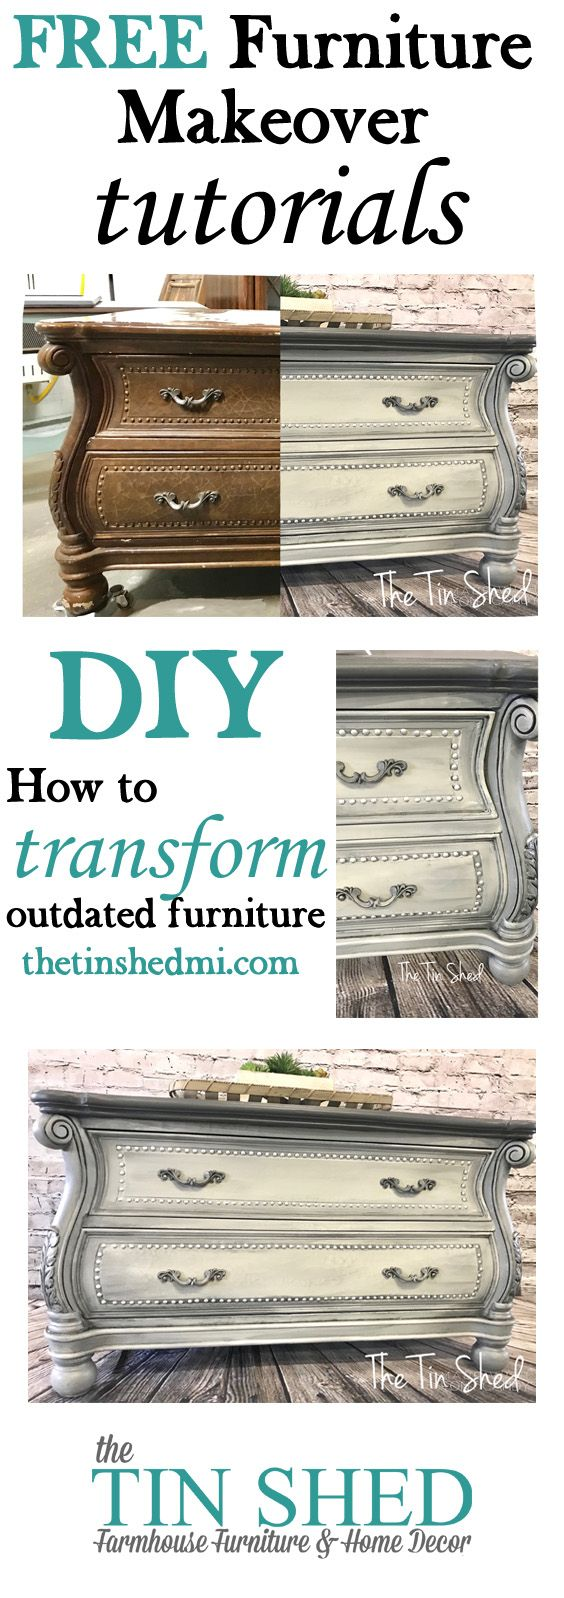 Blending paint on furniture, DIY painted furniture inspiration, free tutorial